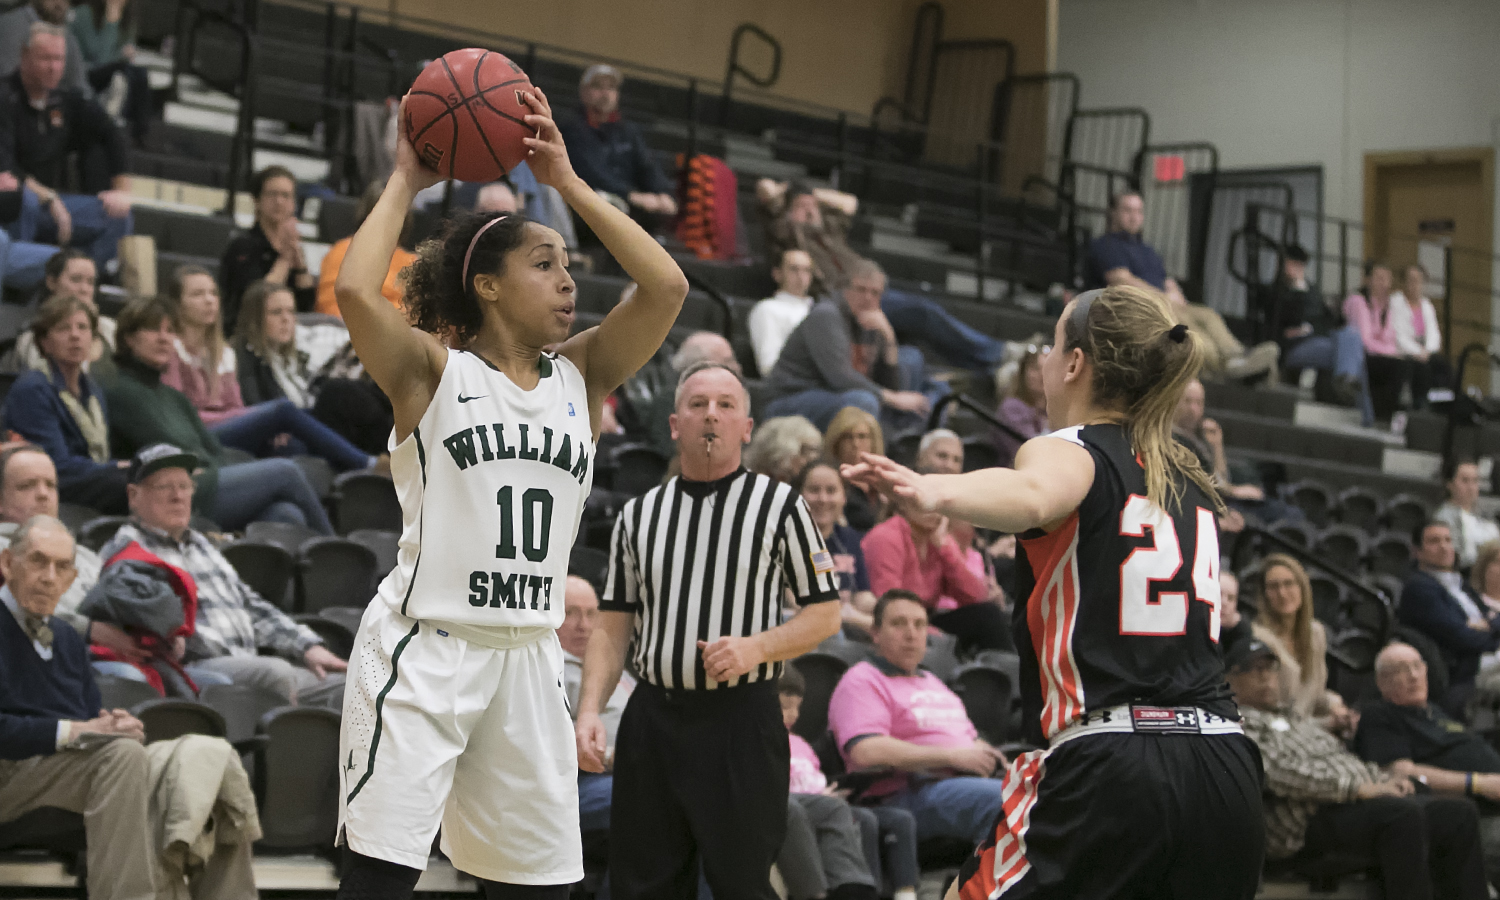 William Smith Junior Kendra Quinn-Moultrie looks for an open teammate in Fridays Liberty League game. The RIT Tigers hot shooting lead them to a 79-50 win over the Herons.